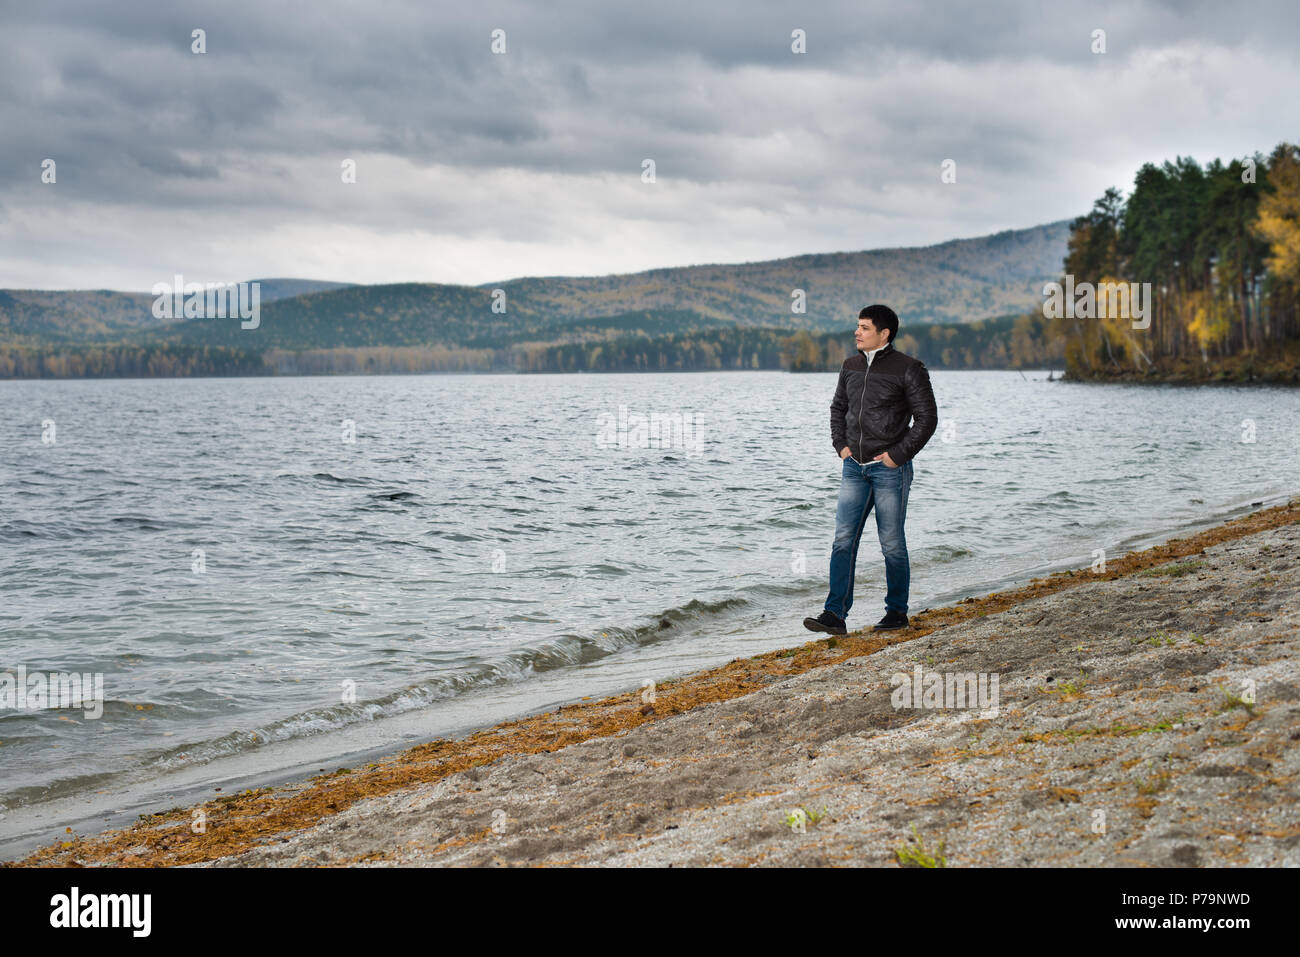 young guy outdoor on water moorage for boat, in autumn cold overcast day - Stock Image